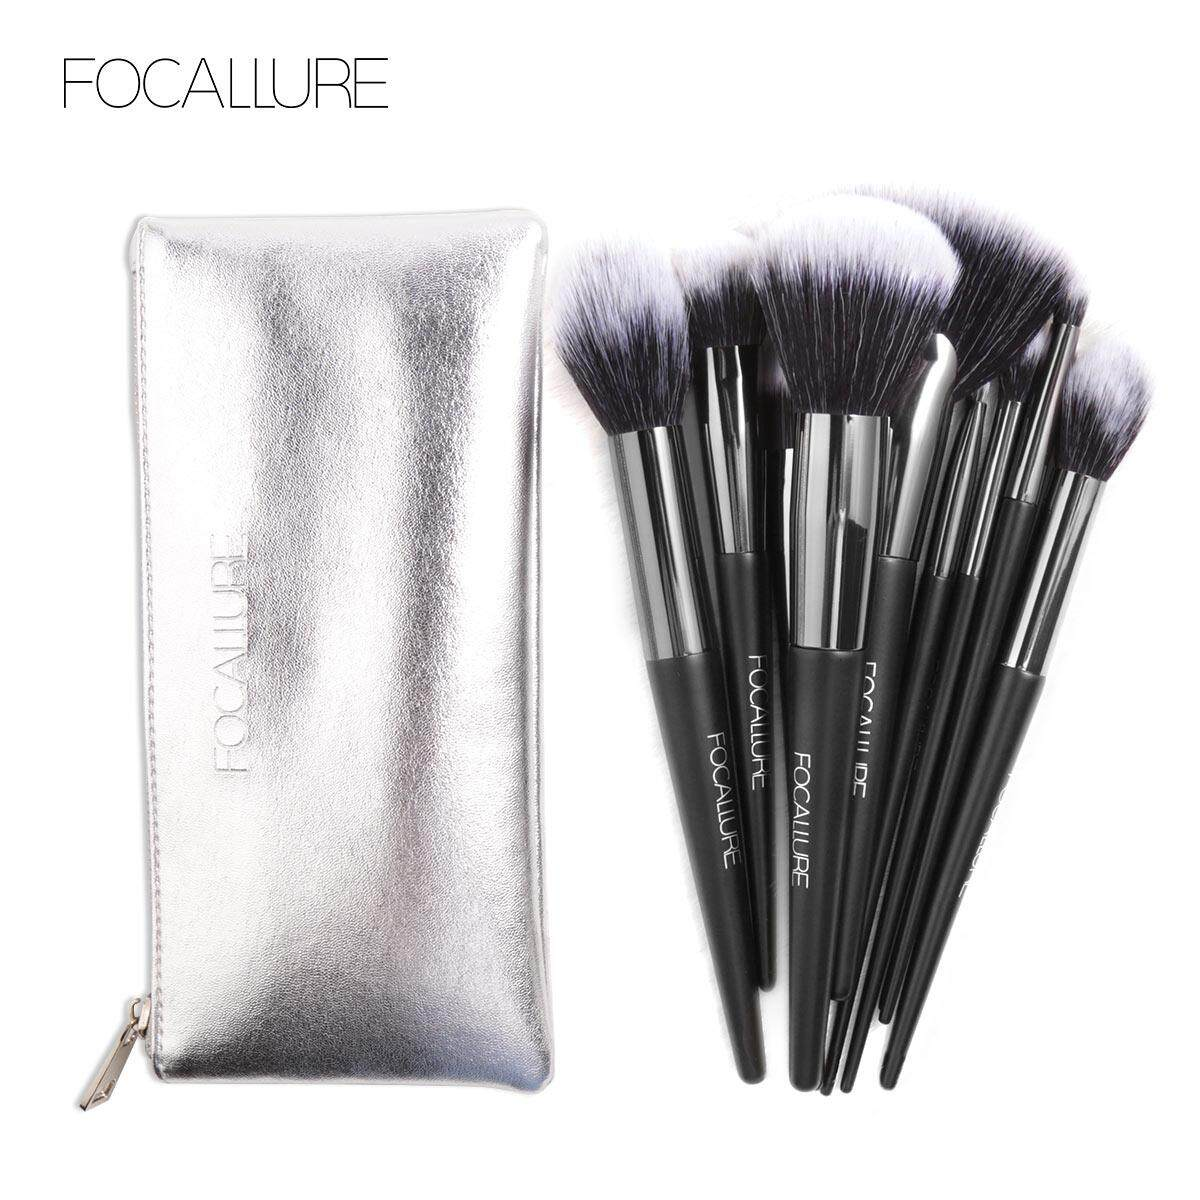 Focallure Buy At Best Price In Malaysia Glitter And Glow Liquid Eyeshadow New Arrival 10pcs Set Professional Makeup Brushes Kit Tools